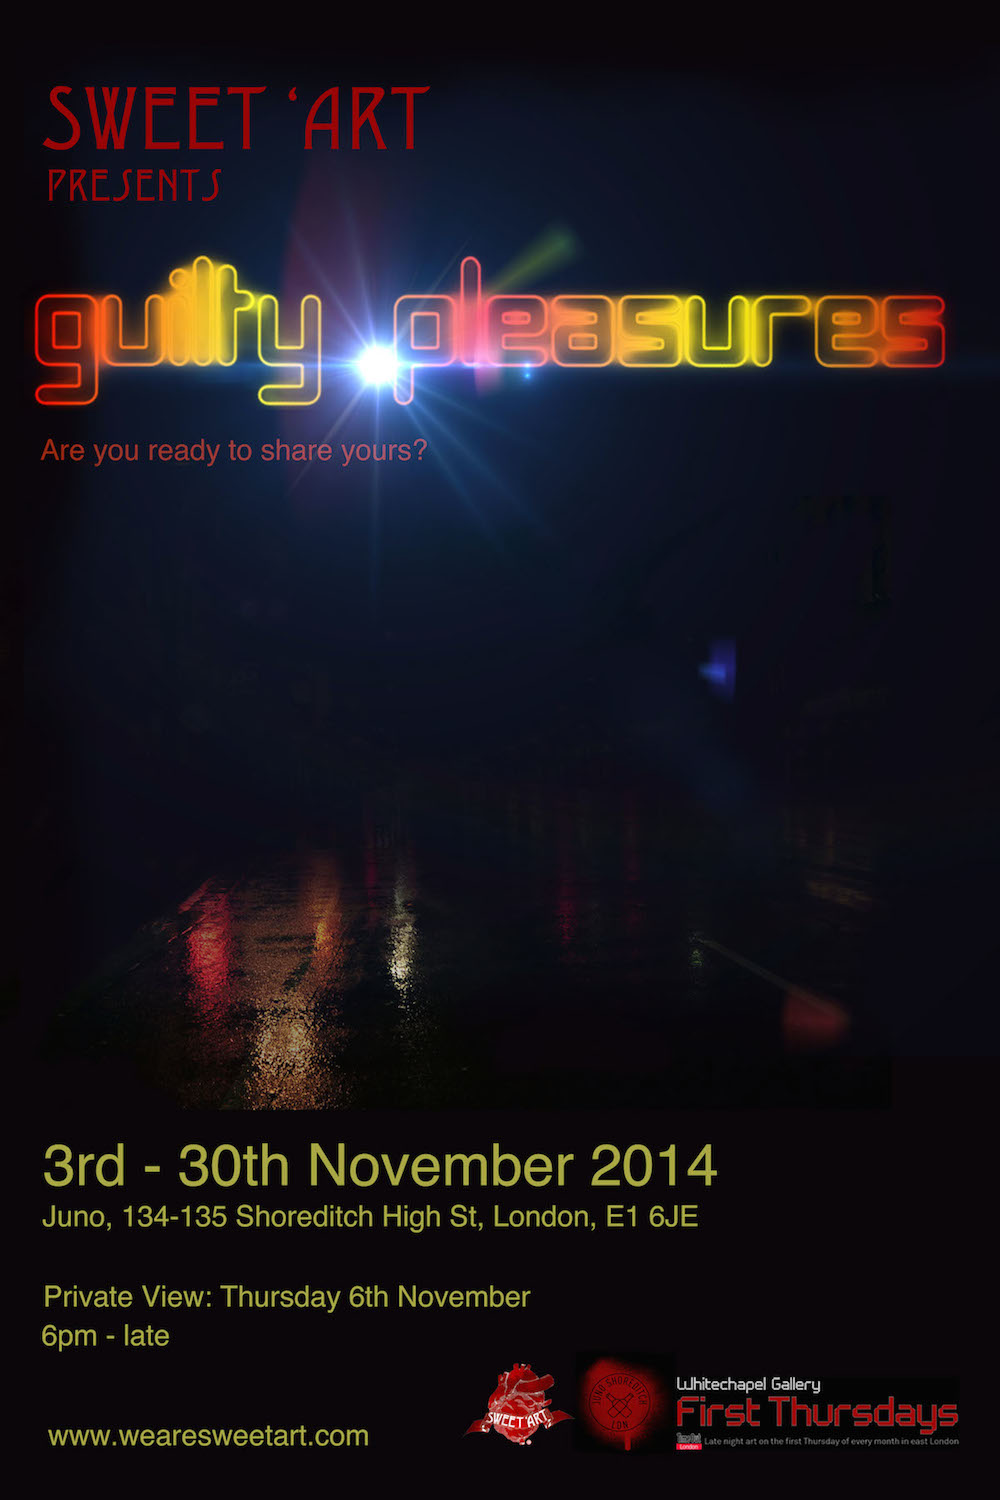 Sweet 'Art presents Guilty Pleasures